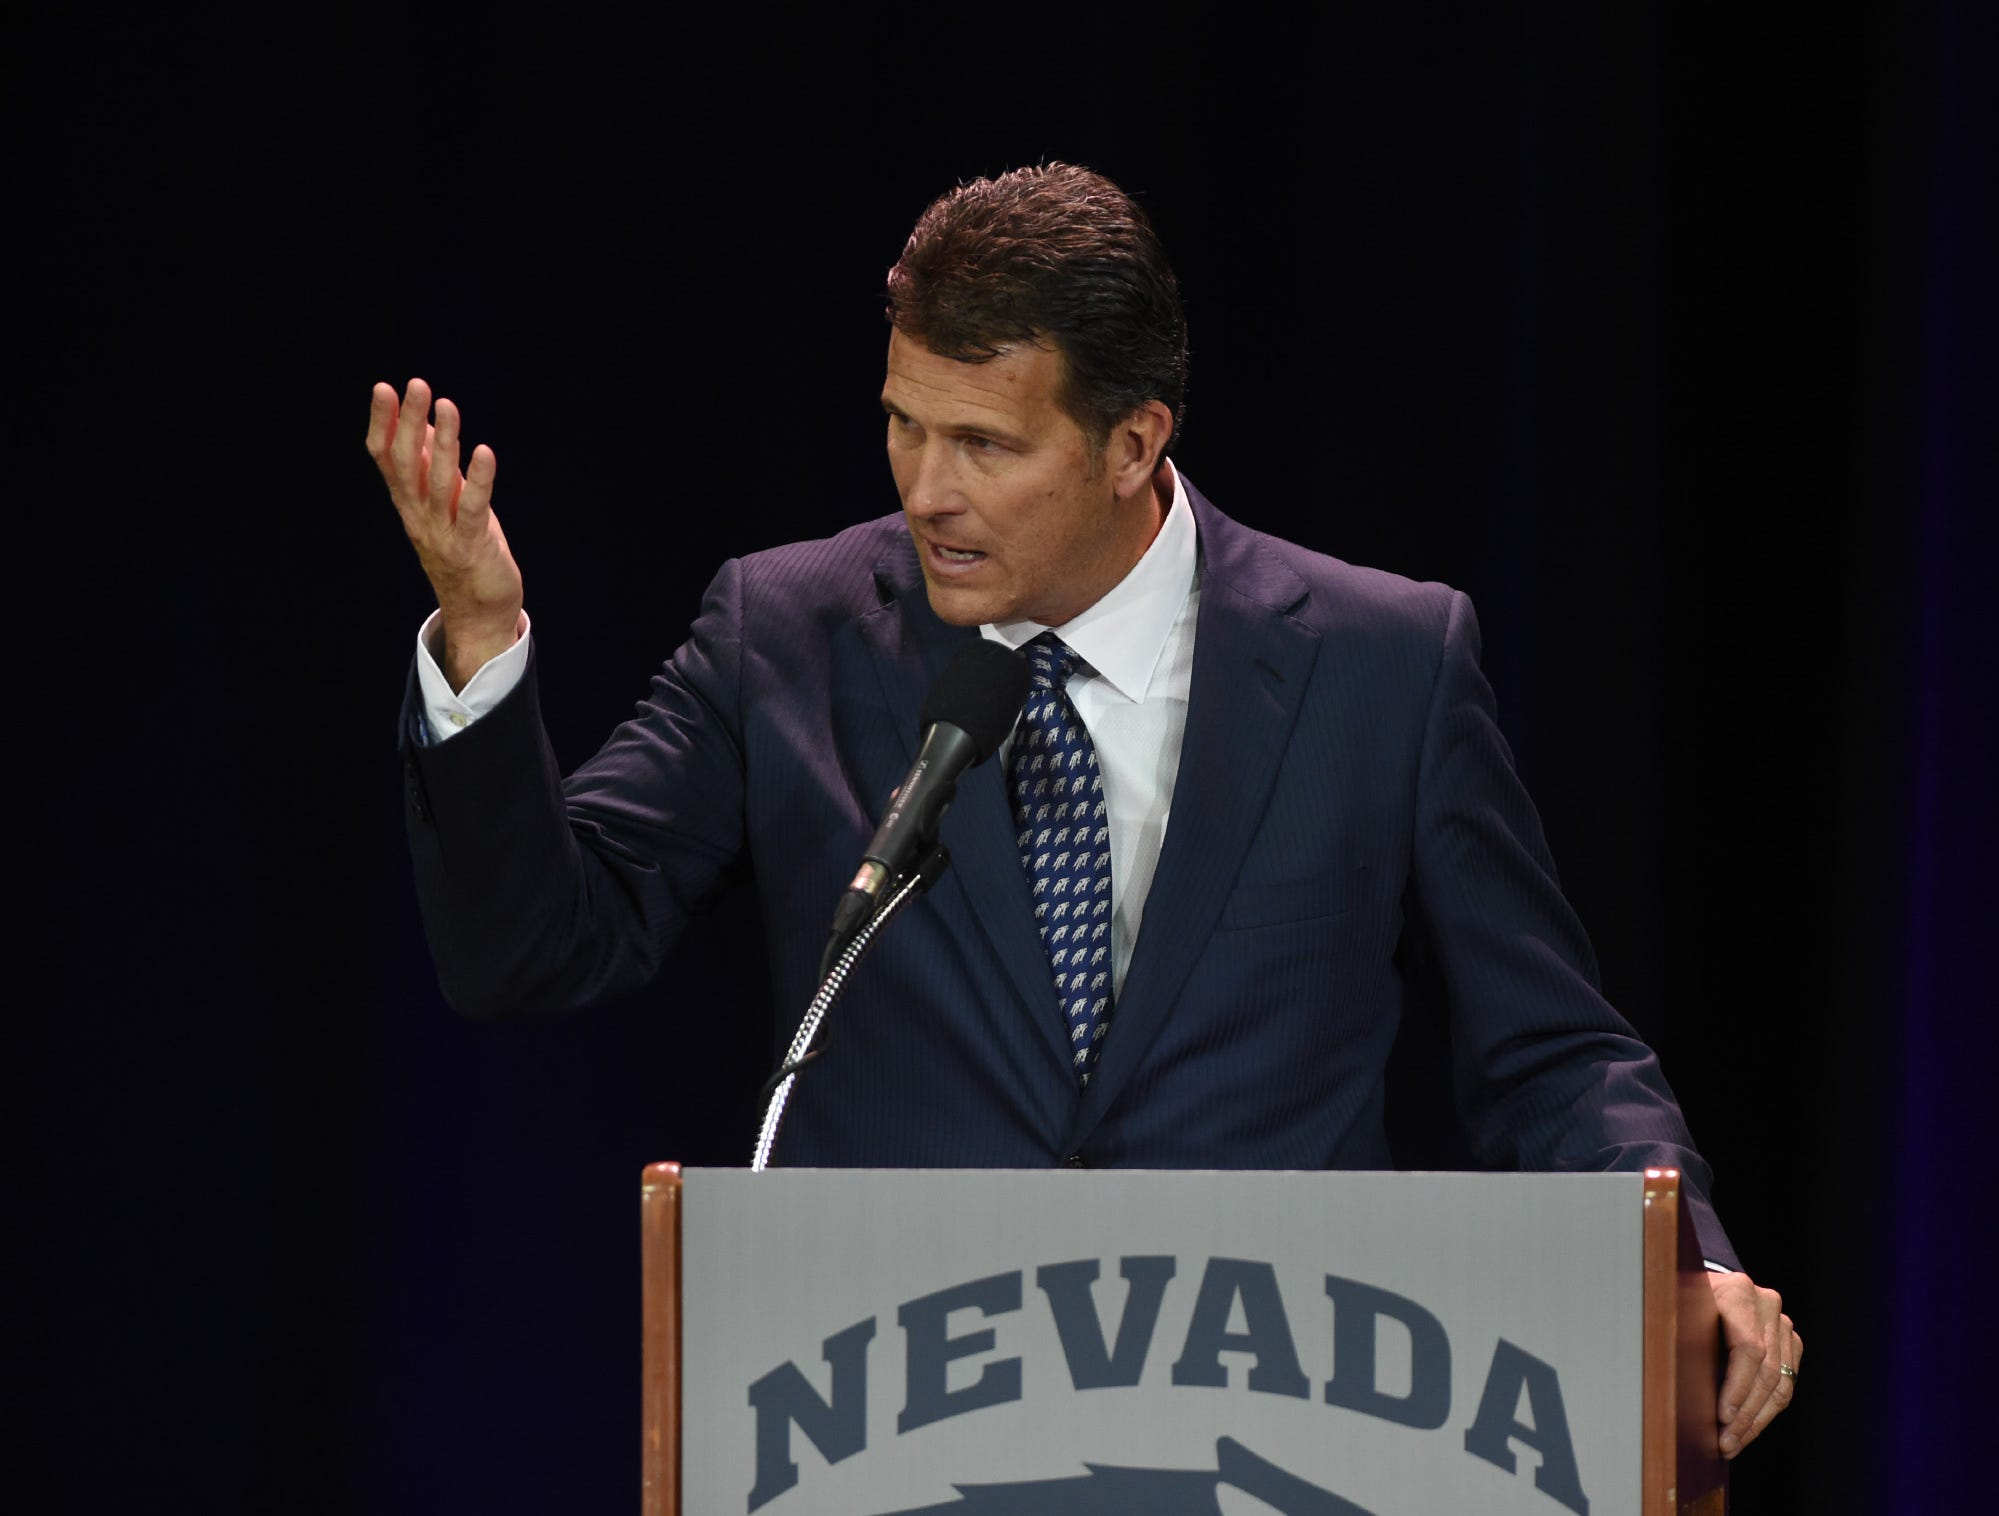 Steve Alford speaks after being introduced as the new Nevada basketball coach during a press conference at Lawlor Events Center in Reno, Nevada on April 12, 2019.